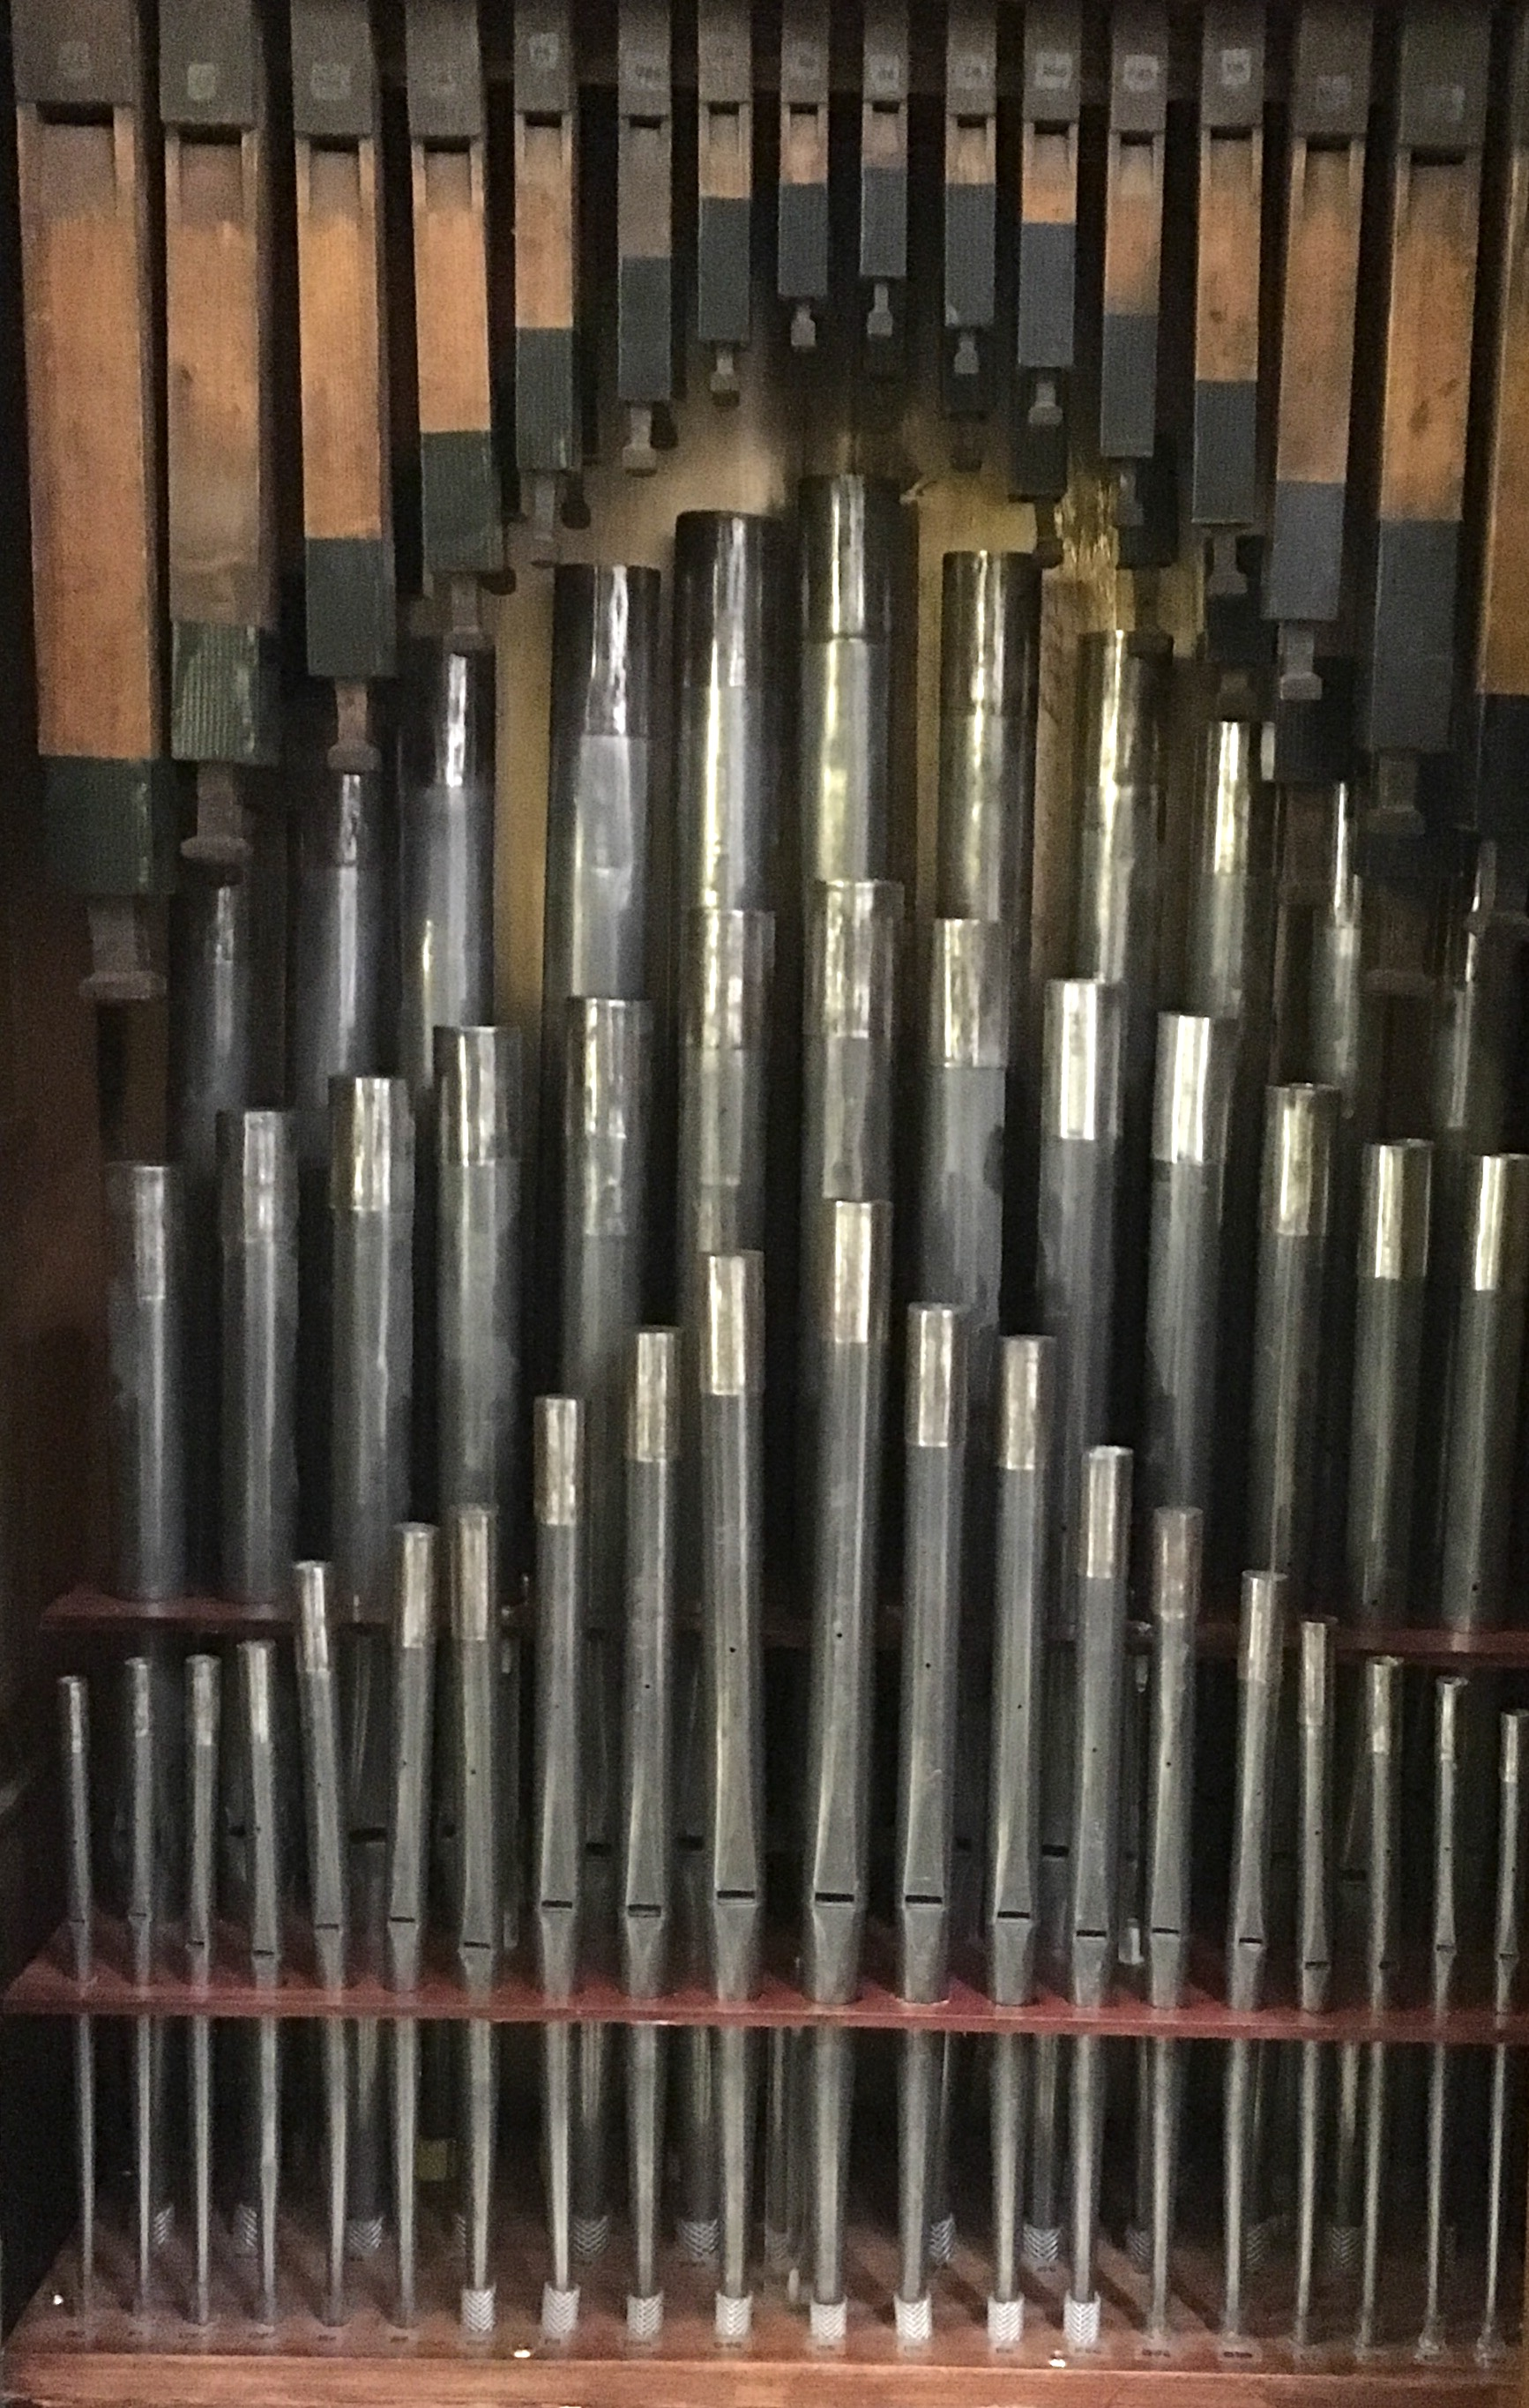 The two pipe ranks inside the PipeMare cabinet